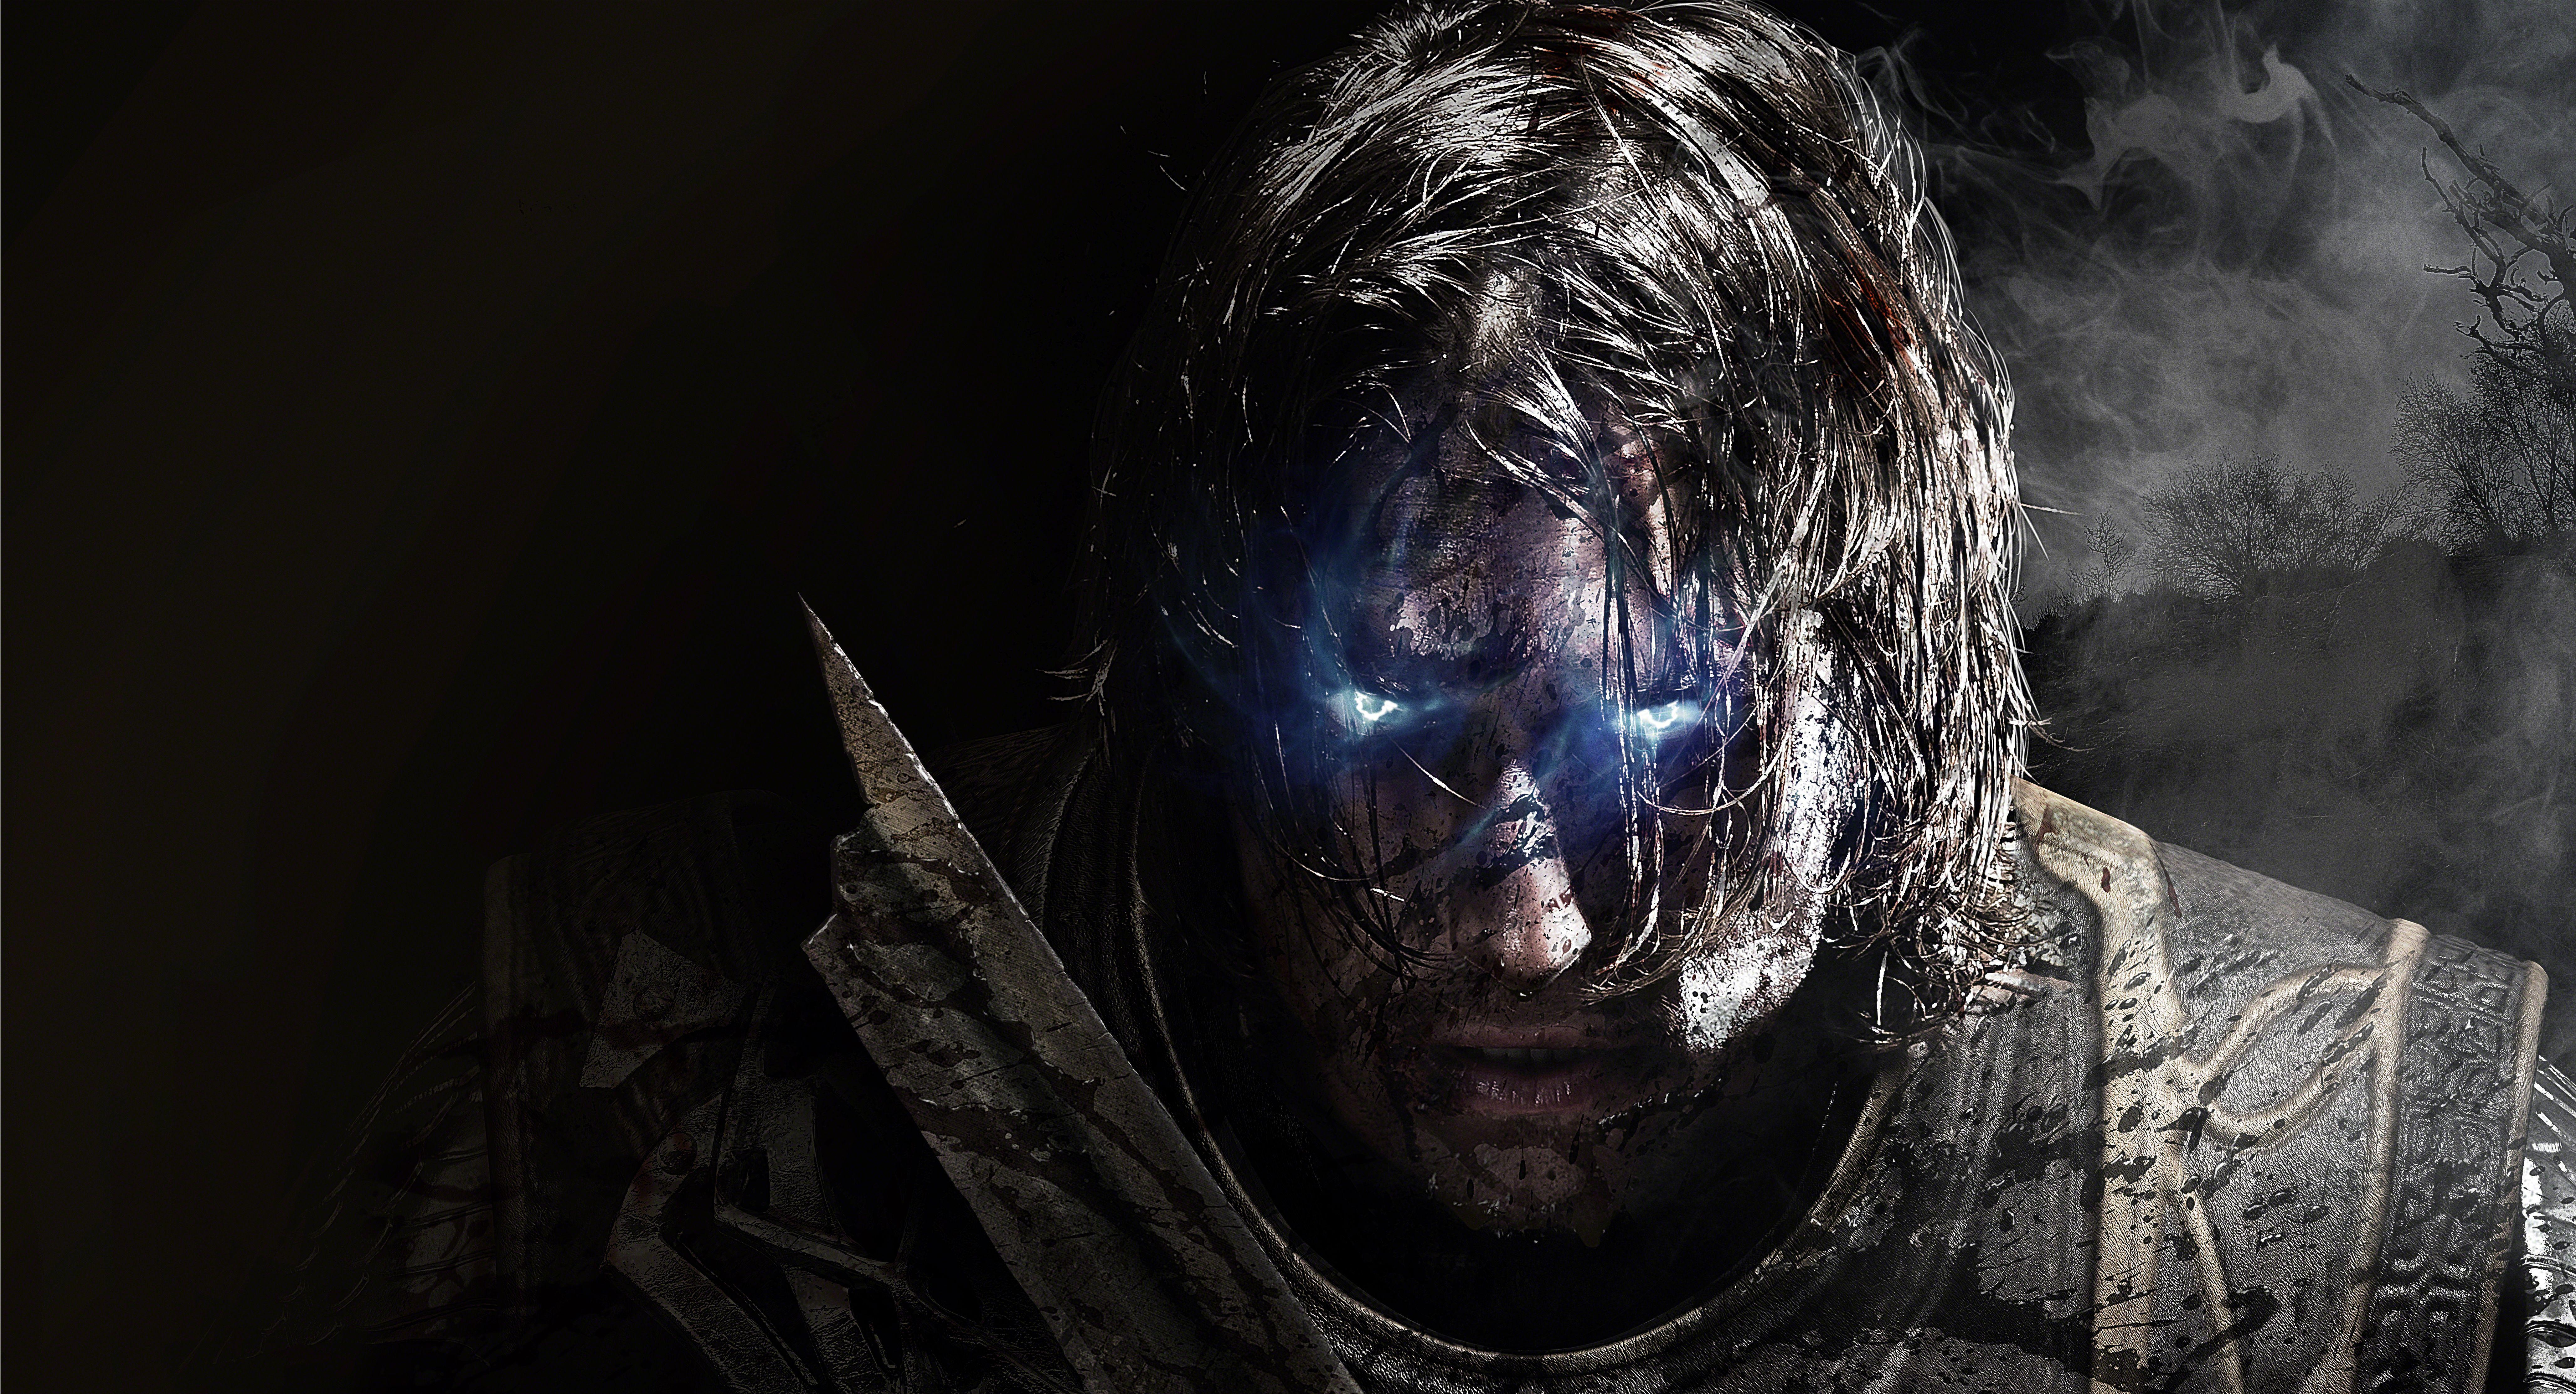 Middle Earth Shadow Of War Wallpaper: Middle-earth: Shadow Of Mordor Wallpapers